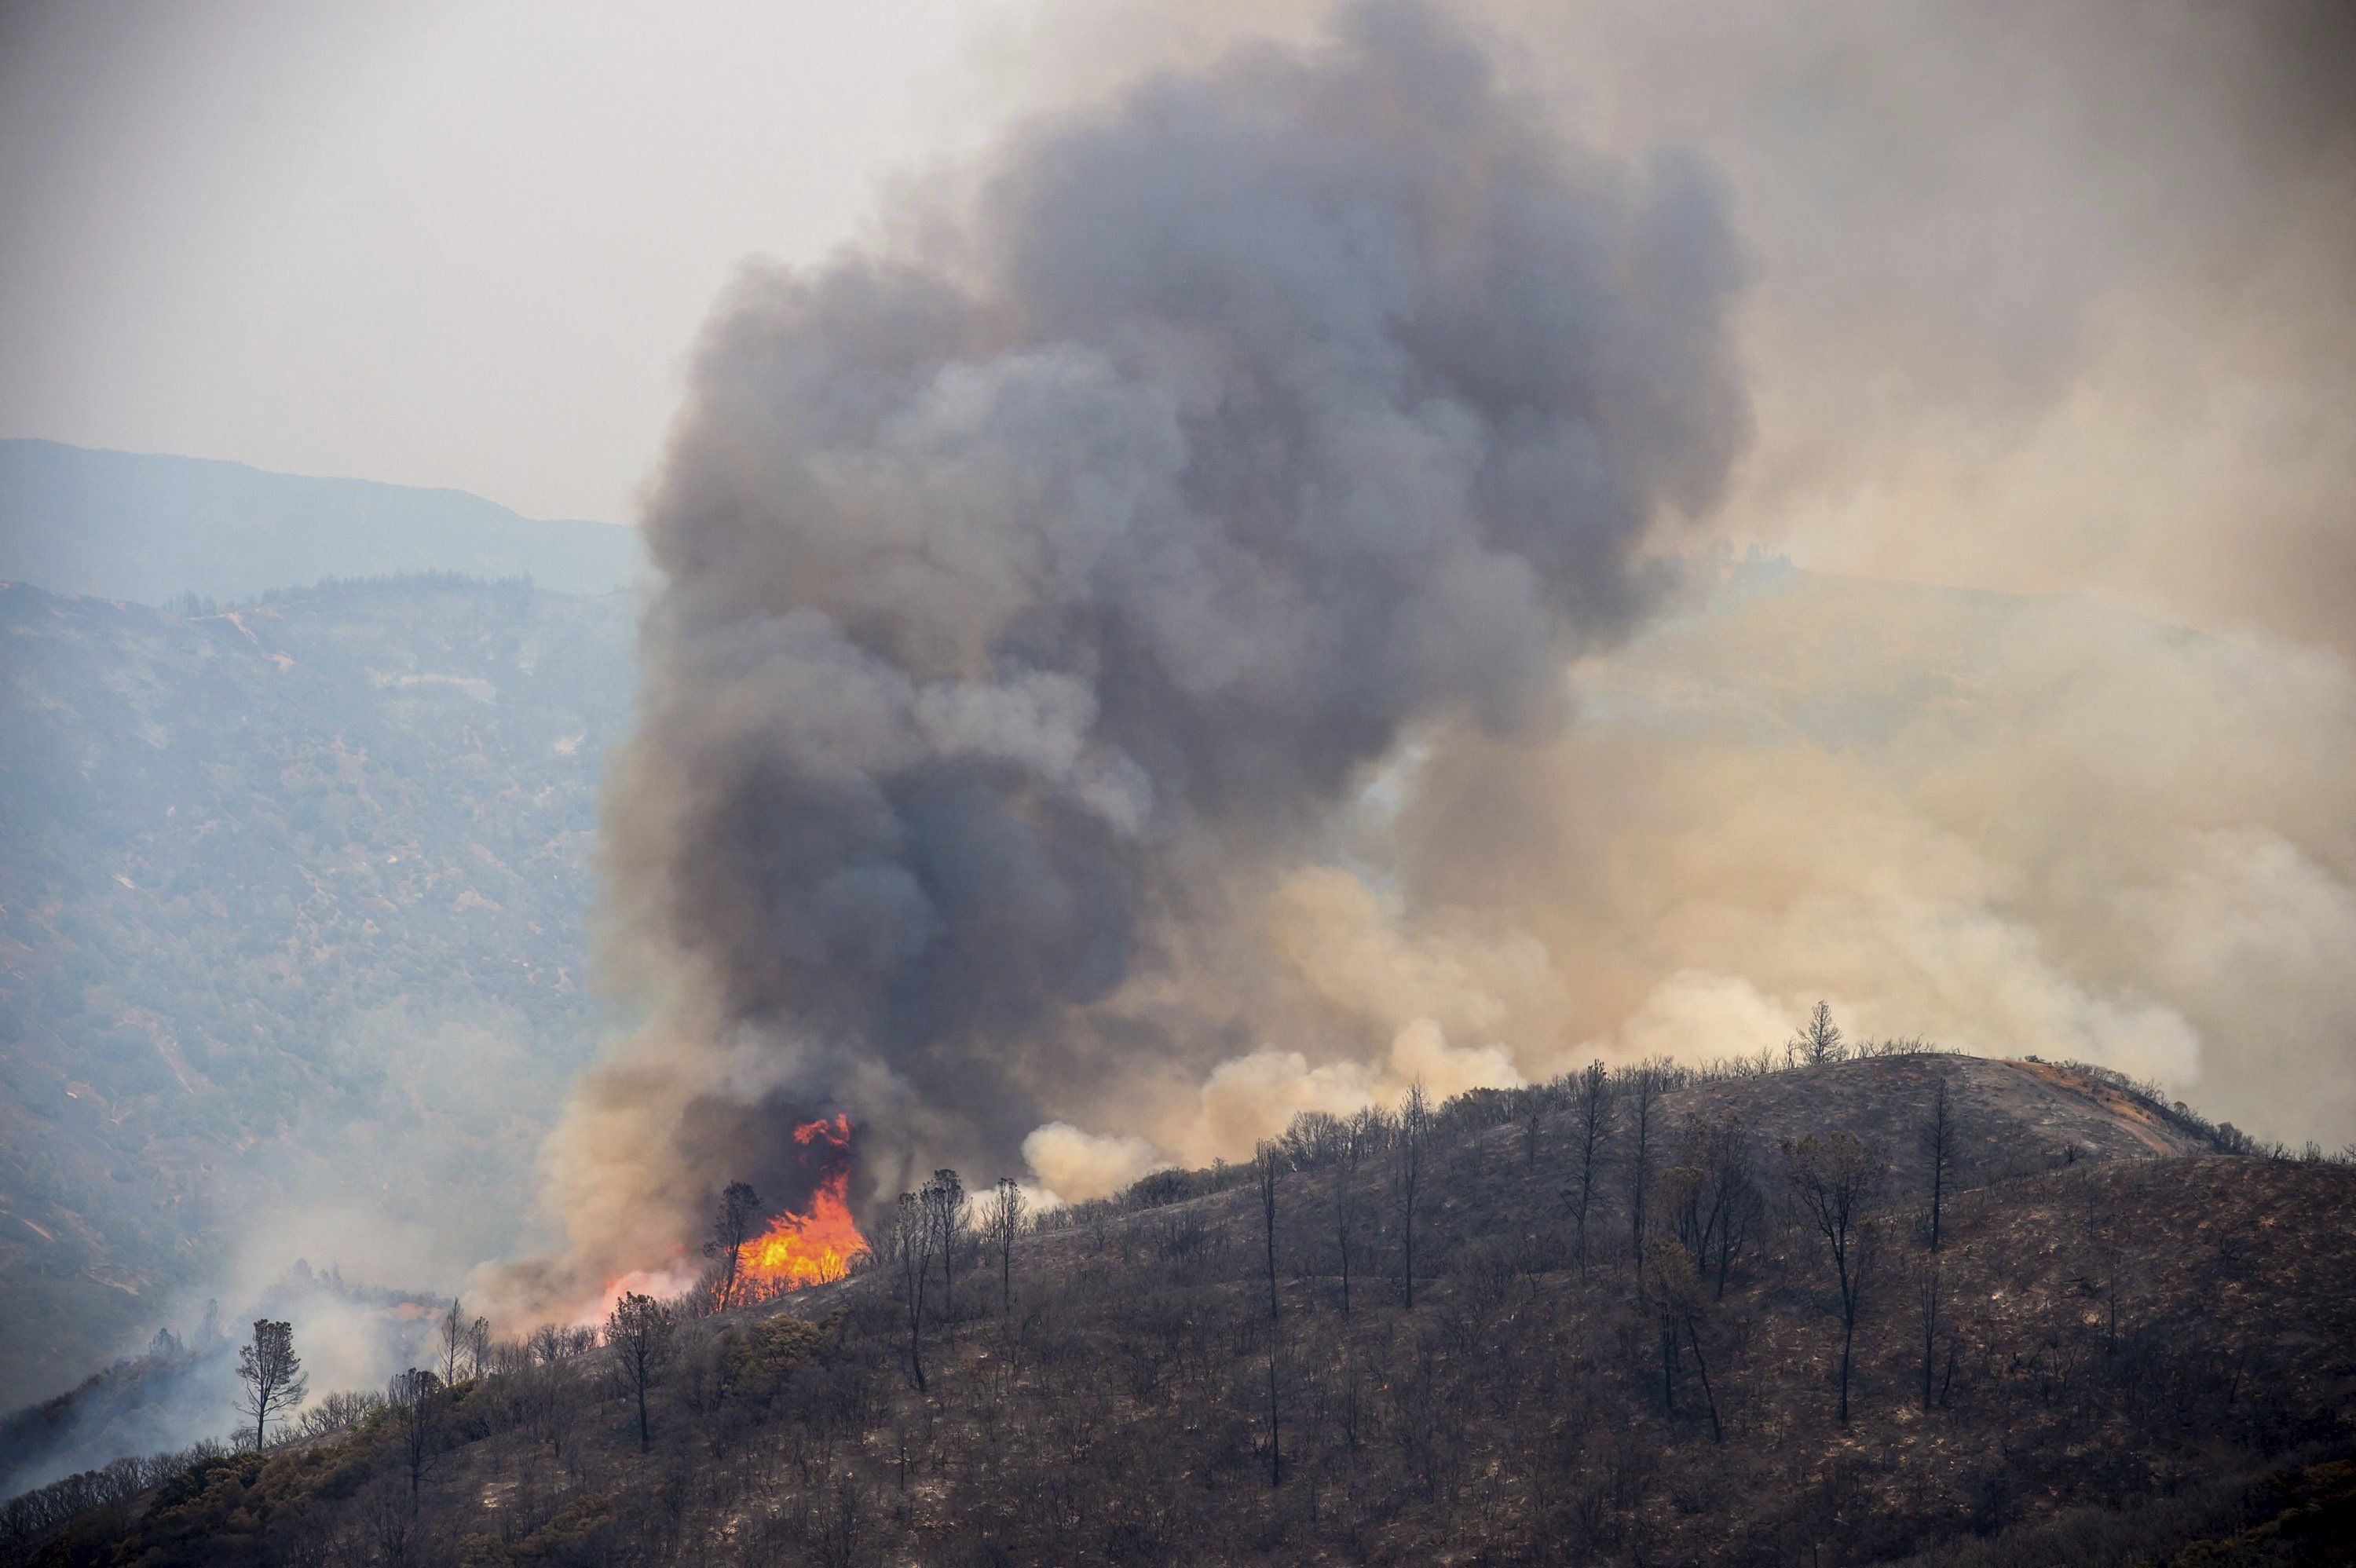 Mendocino fire has become California's largest ever - The